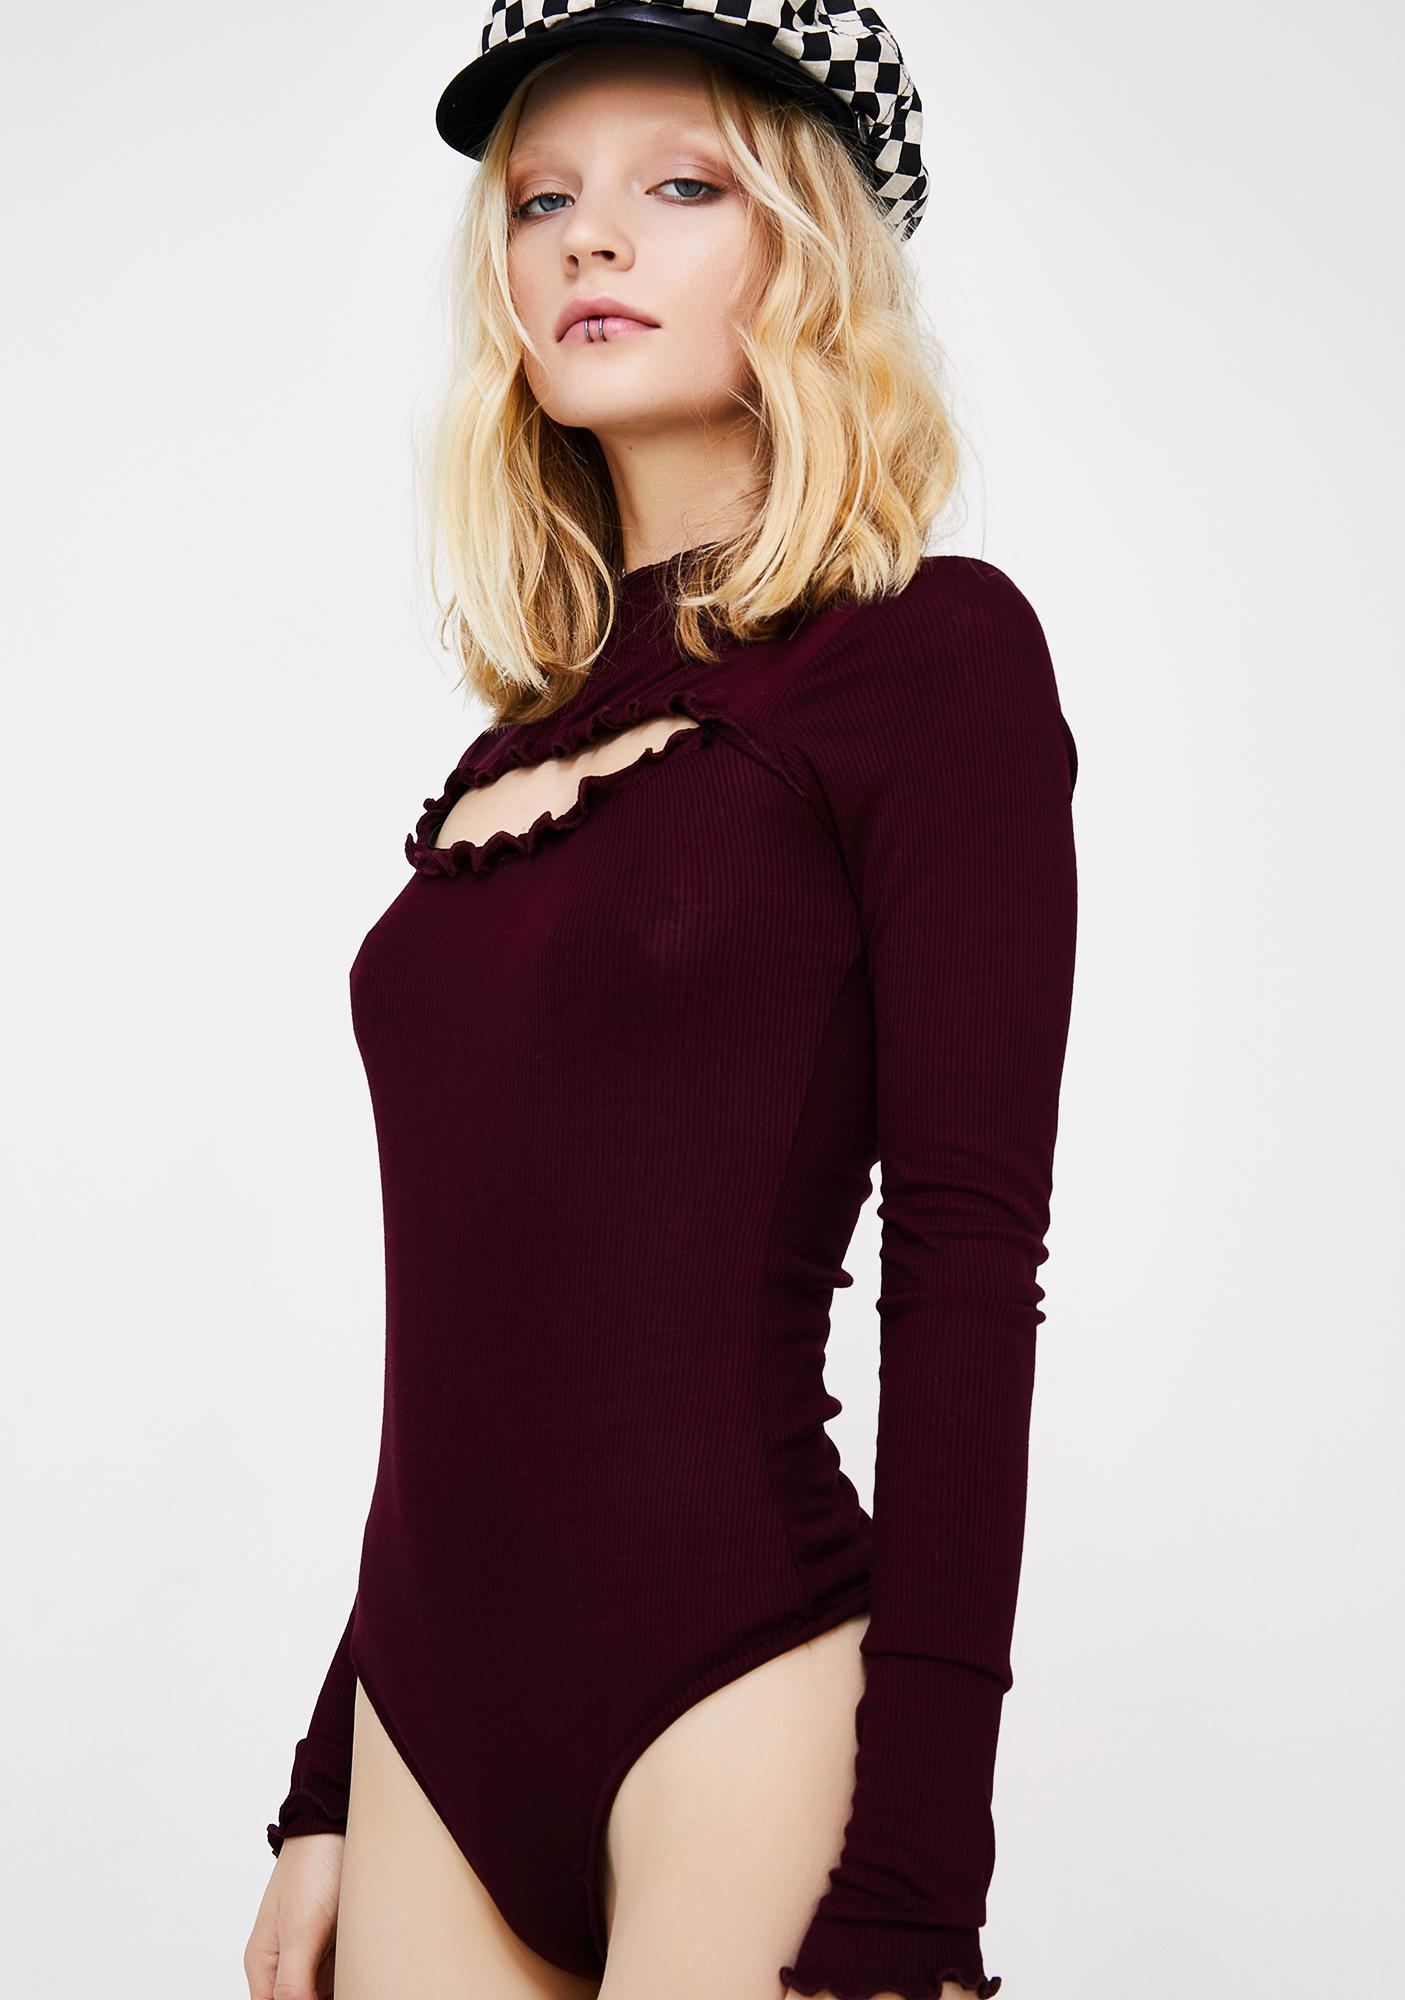 Unwanted Attention Bodysuit